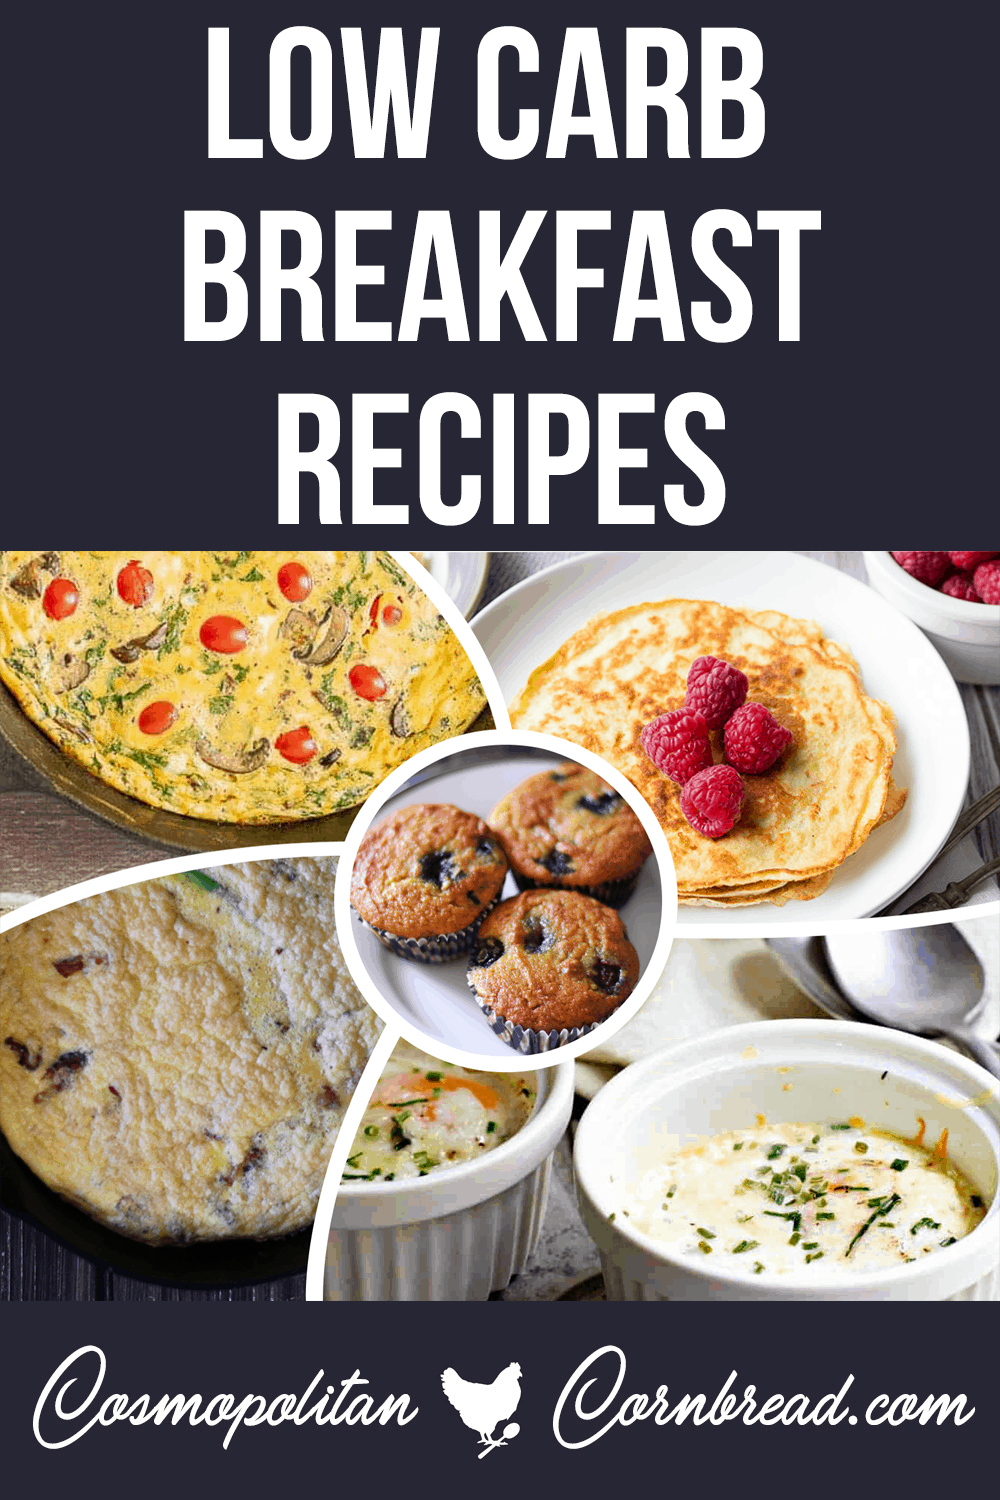 Low Carb Breakfast Options for starting your day off right! #keto #paleo #lowcarb